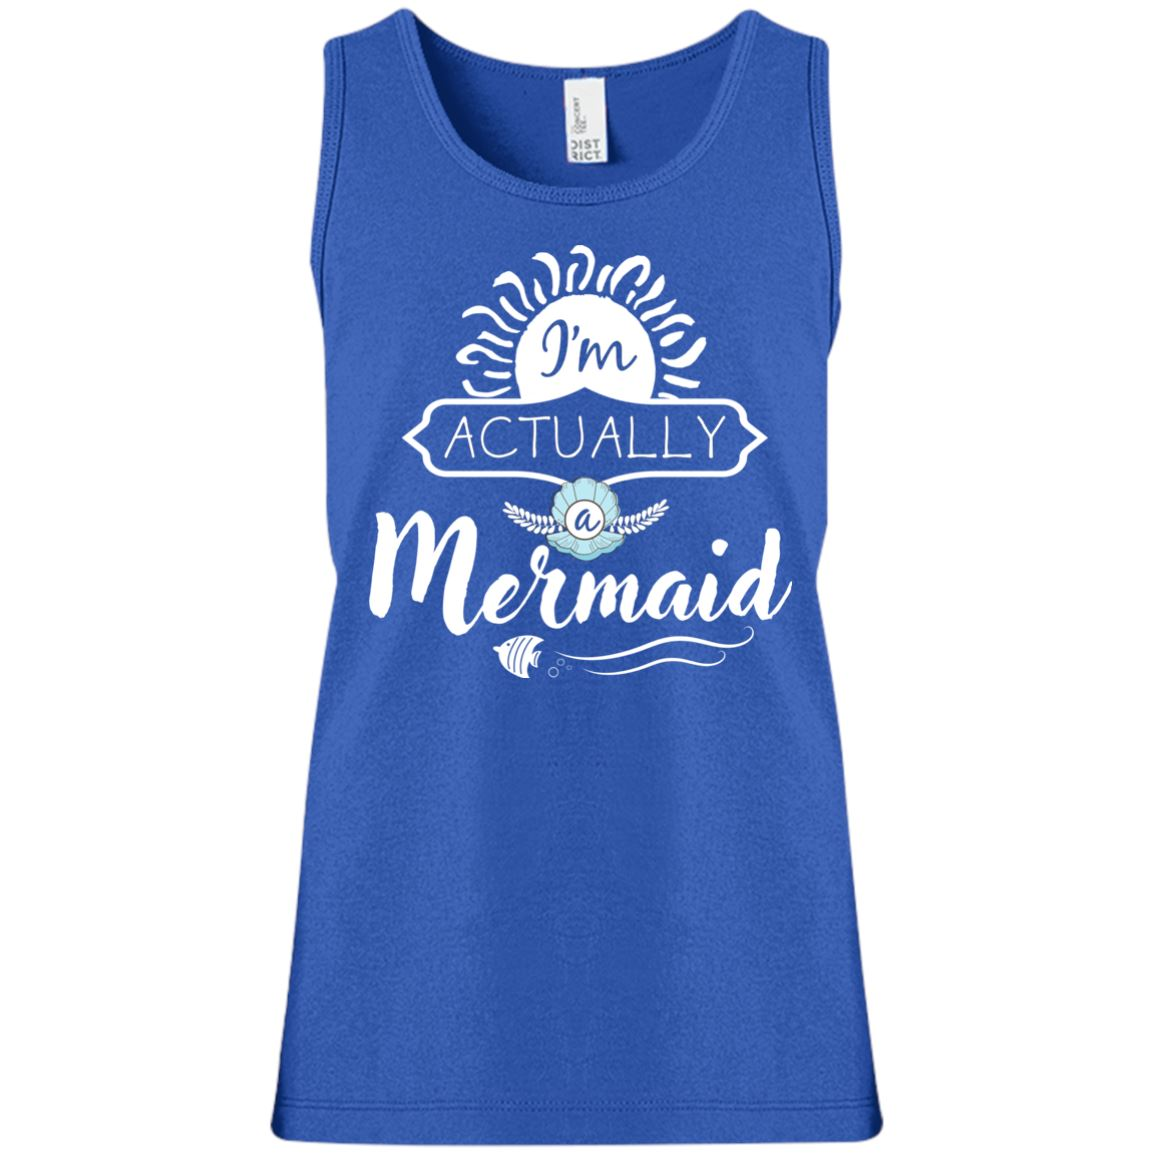 I'm Actually A Mermaid Girls Tank Top Mermaid Apparel Deep Royal YXS